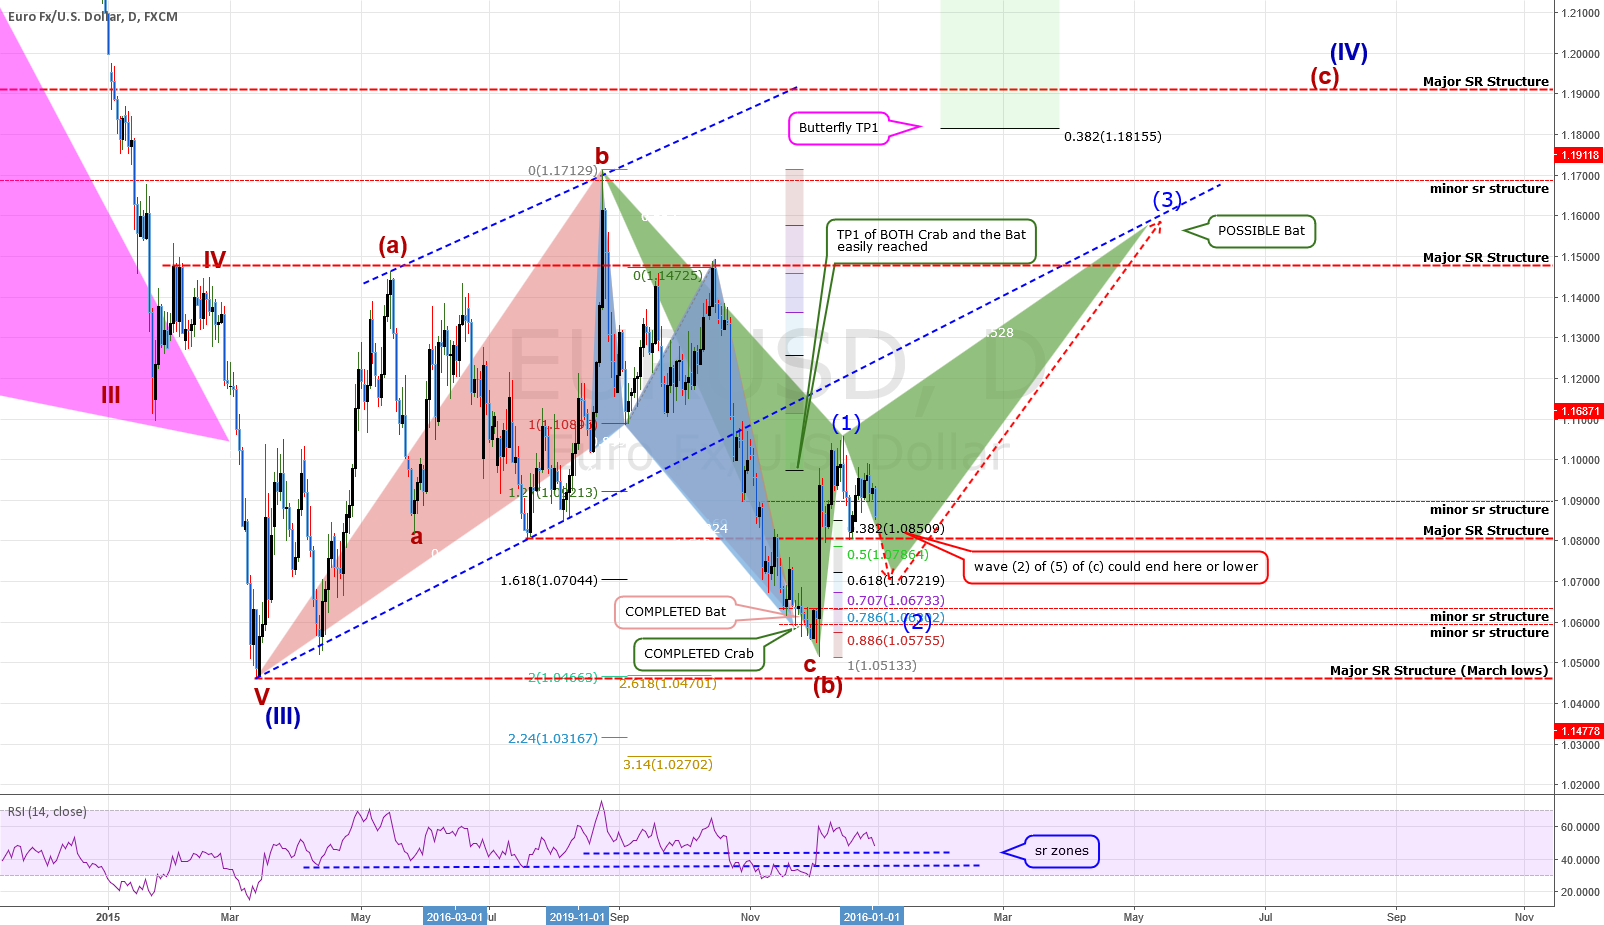 DAILY Chart: EURUSD: Overall Wave Count